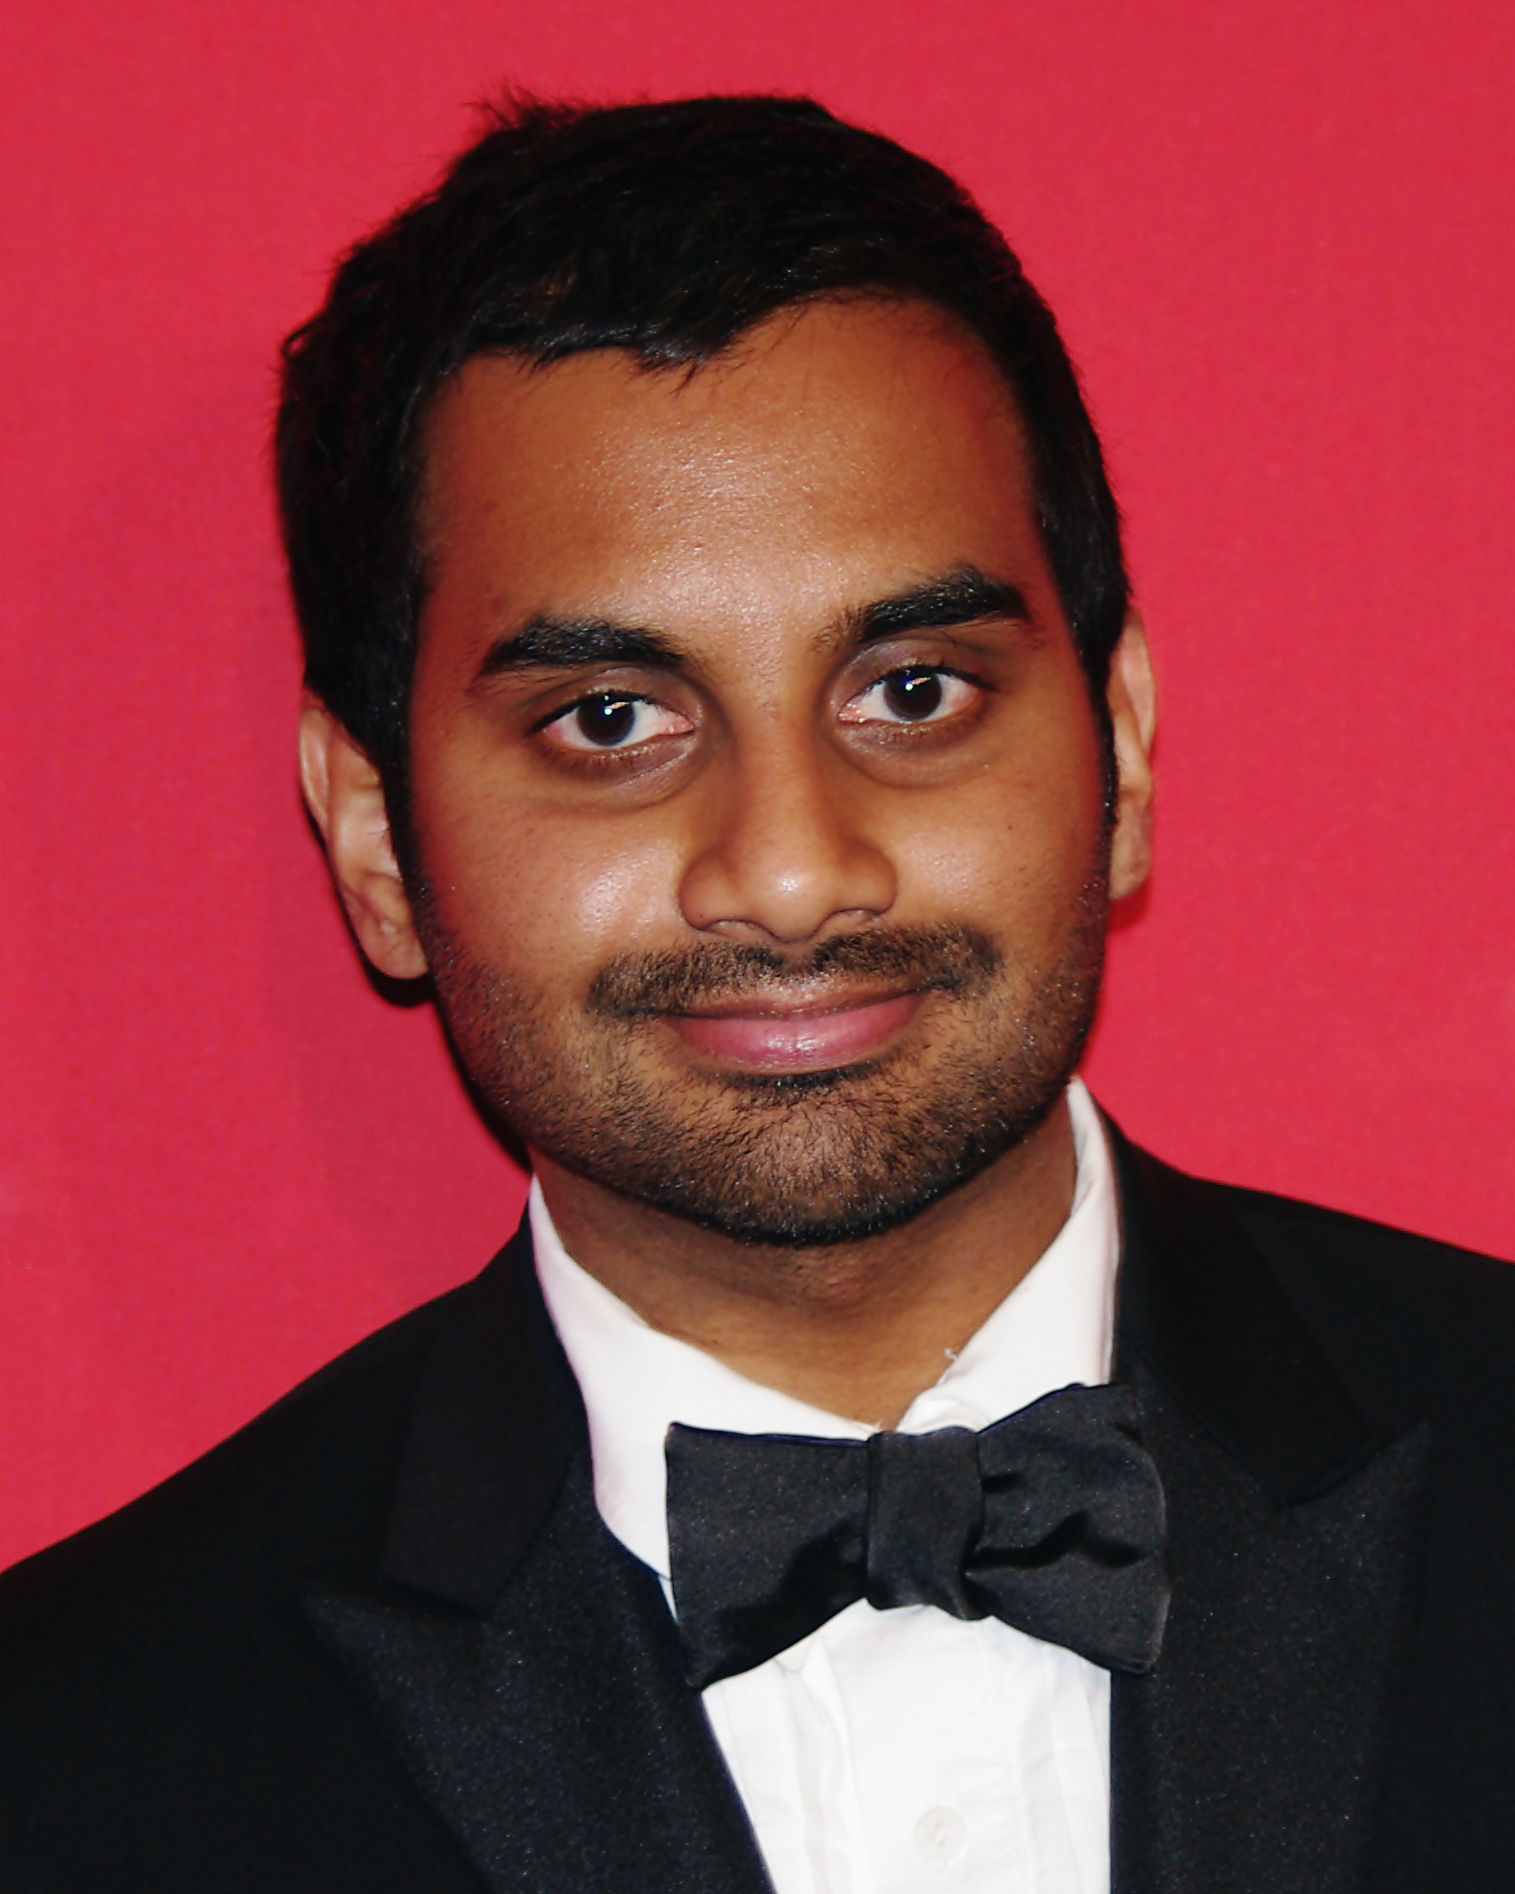 Photo of Aziz Ansari: American actor and stand-up comedian